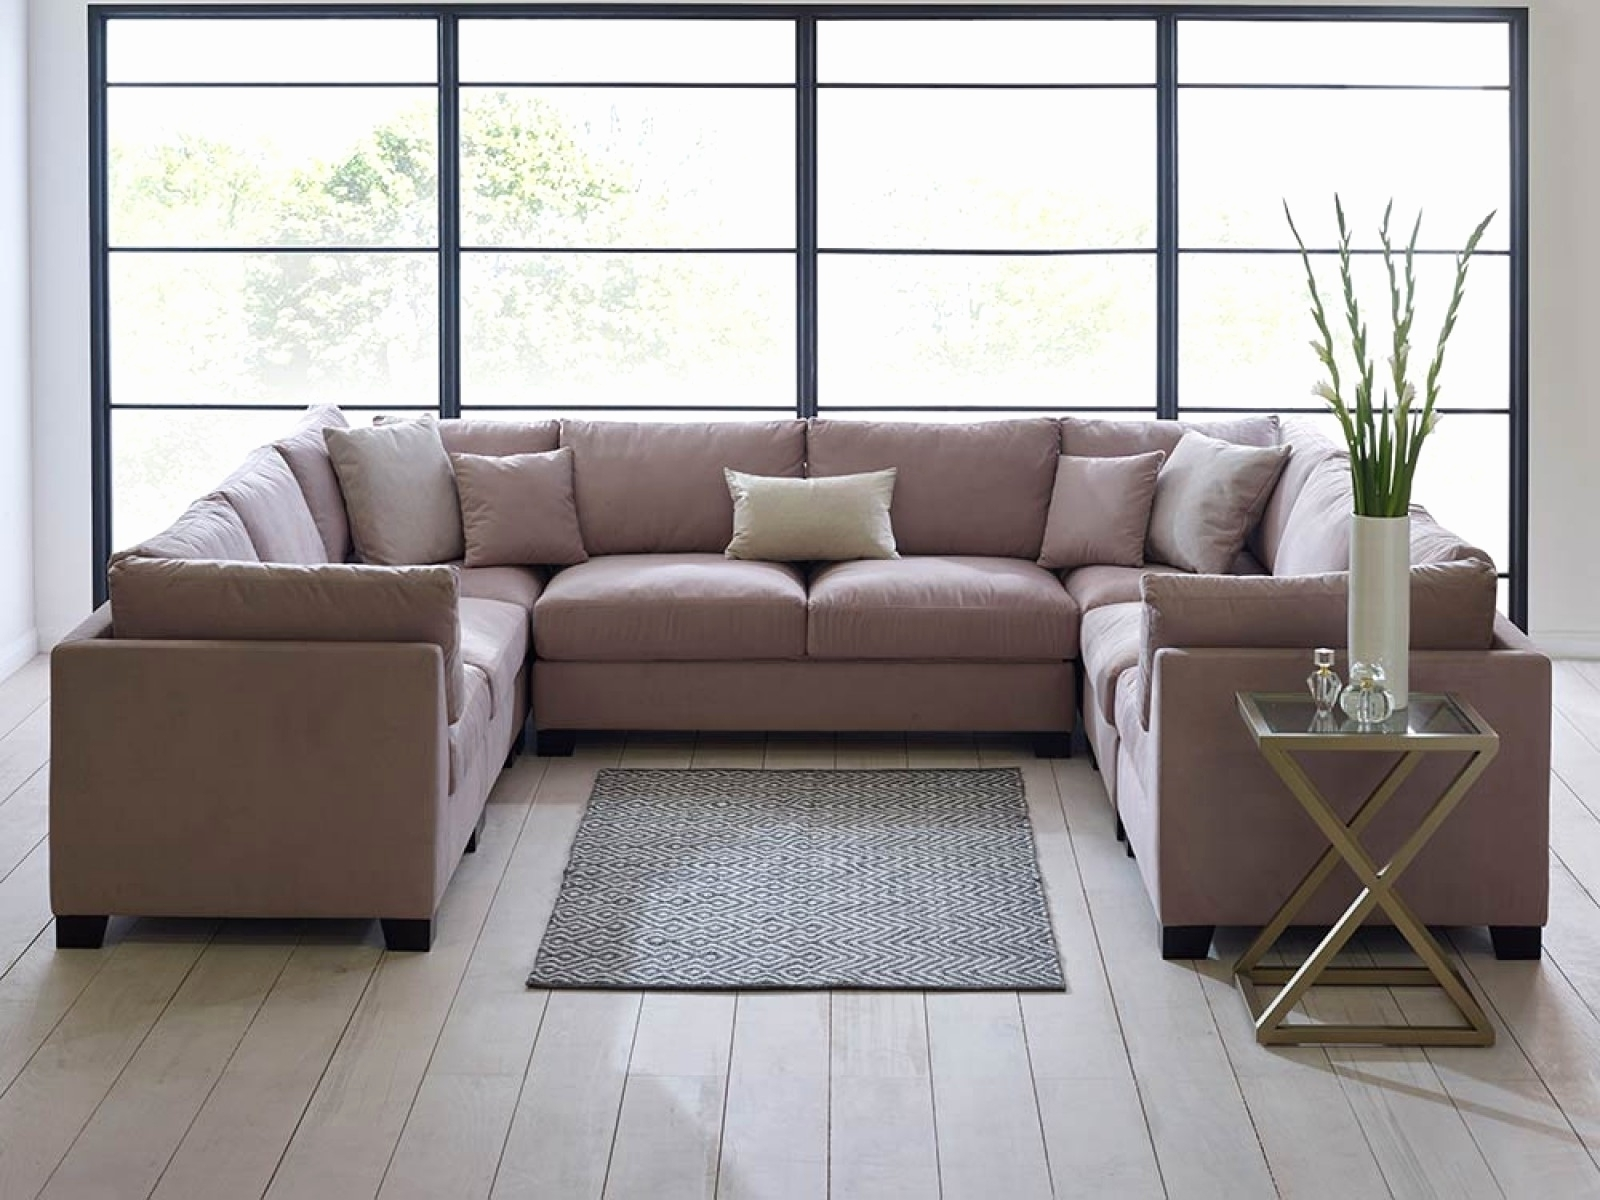 C Shaped Sectional Sofa In Favorite C Shaped Sofas (View 10 of 20)